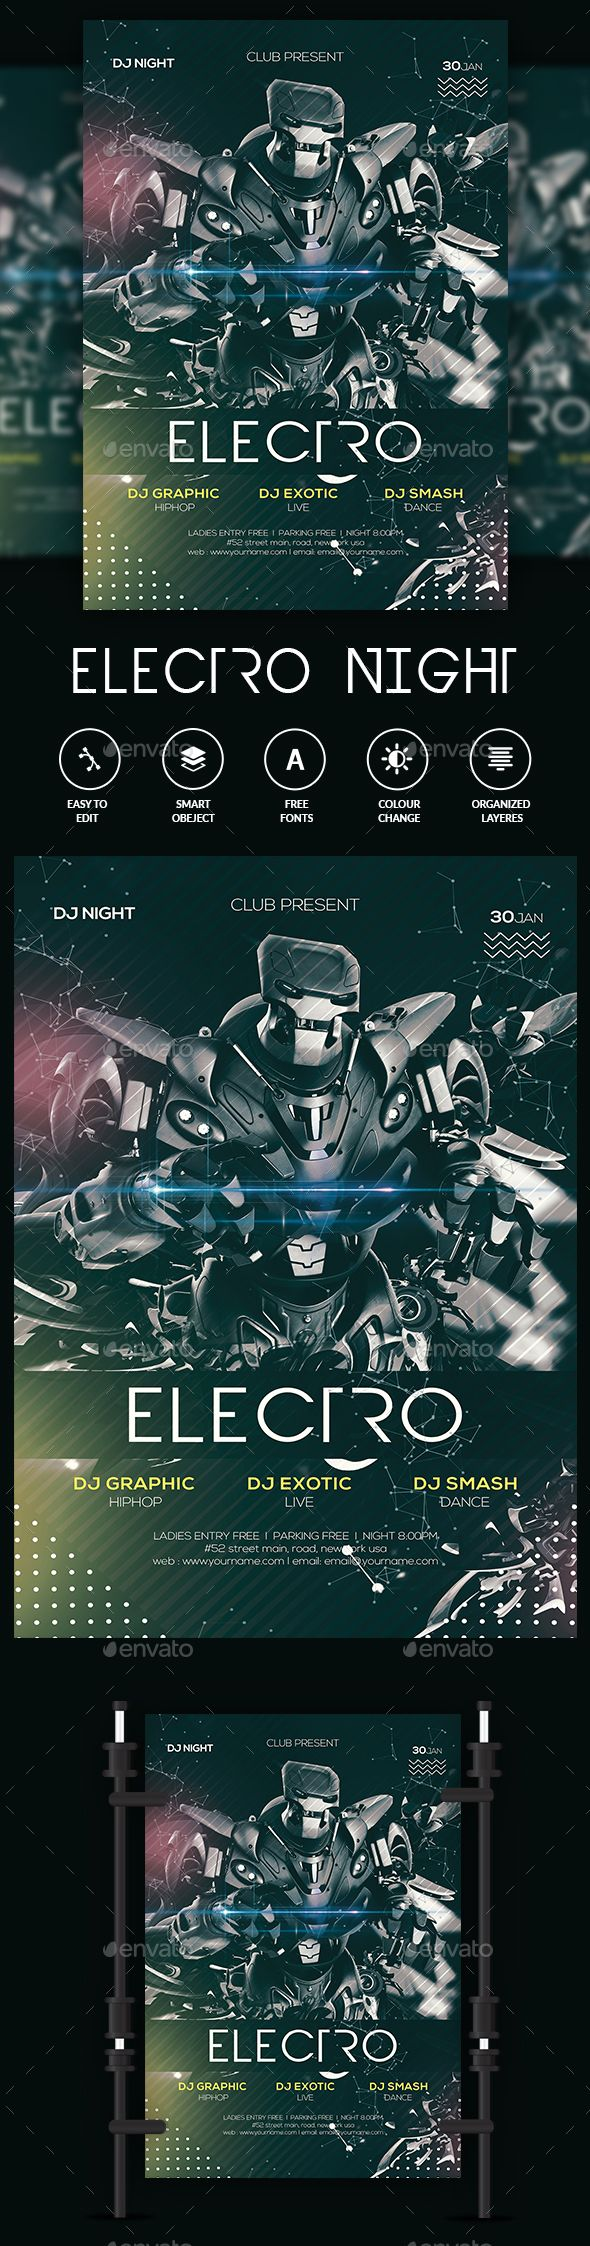 #Electro Alternative Space Flyer - #Clubs & Parties #Events